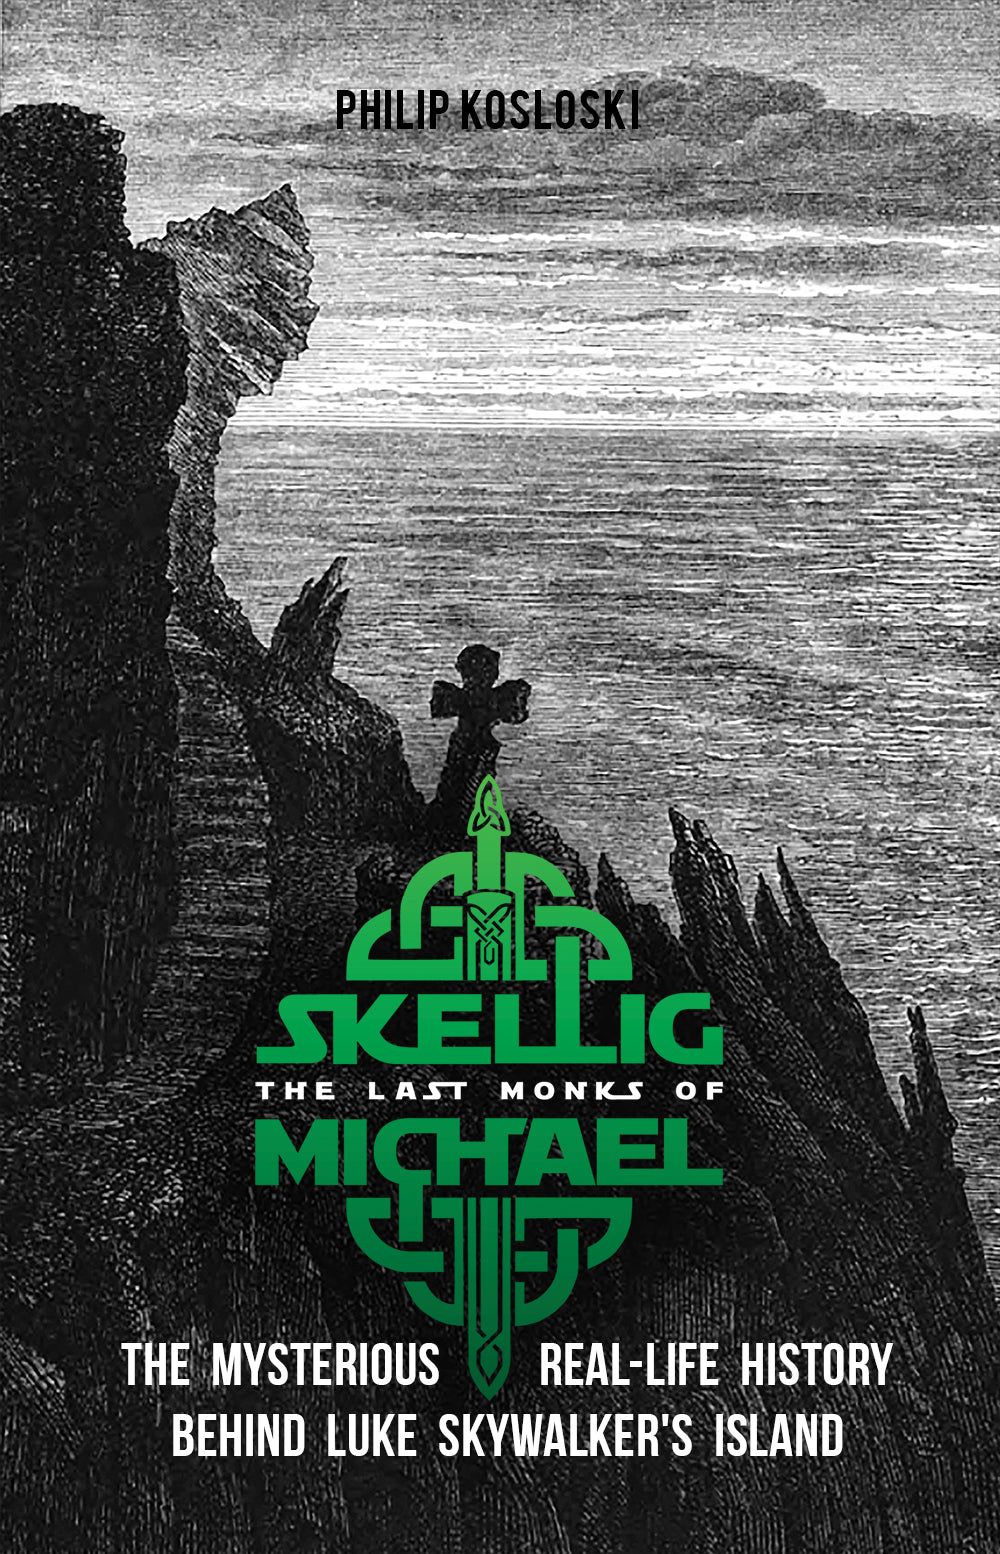 The Last Monks of Skellig Michael: The Mysterious Real-Life History Behind Luke Skywalker's Island (Wholesale)